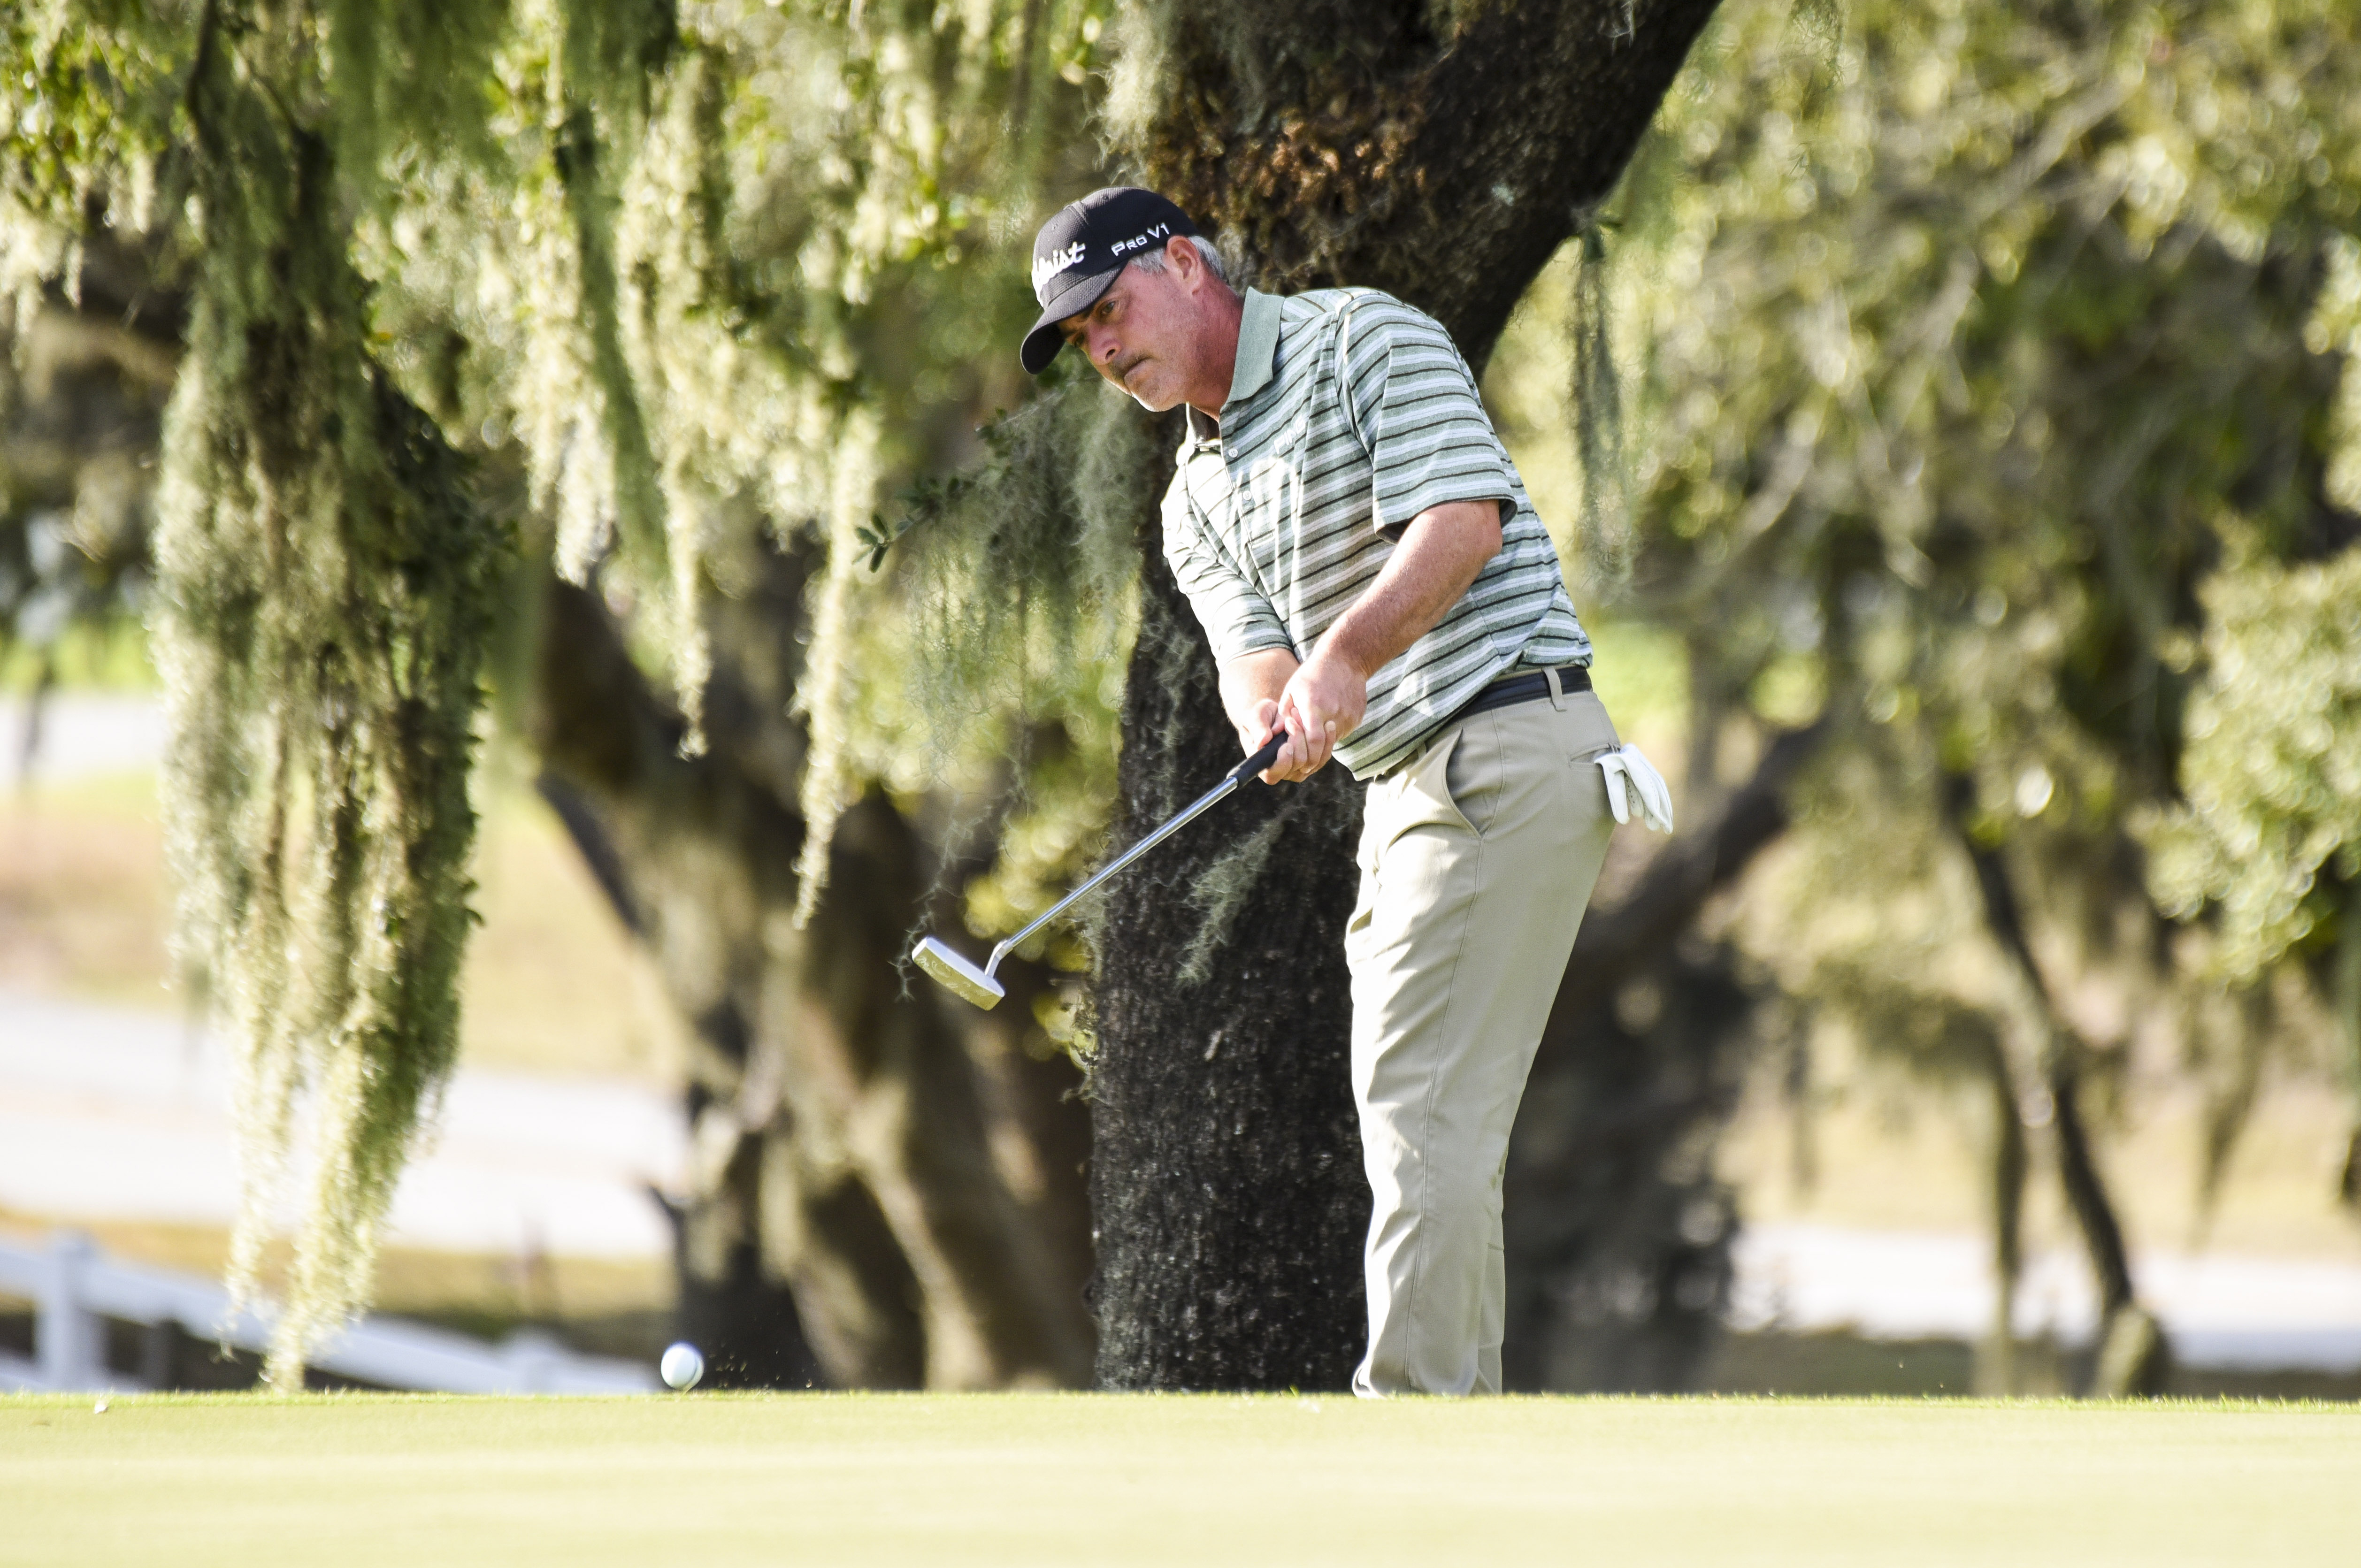 WINTER GARDEN, FL - DECEMBER 10: David Branshaw putts on the 18th hole green of the Panther Lake Course during the third round of Web.com Tour Q-School at Orange County National Golf Center and Lodge on December 10, 2016 in Winter Garden, Florida. (Photo by Keyur Khamar/PGA TOUR)